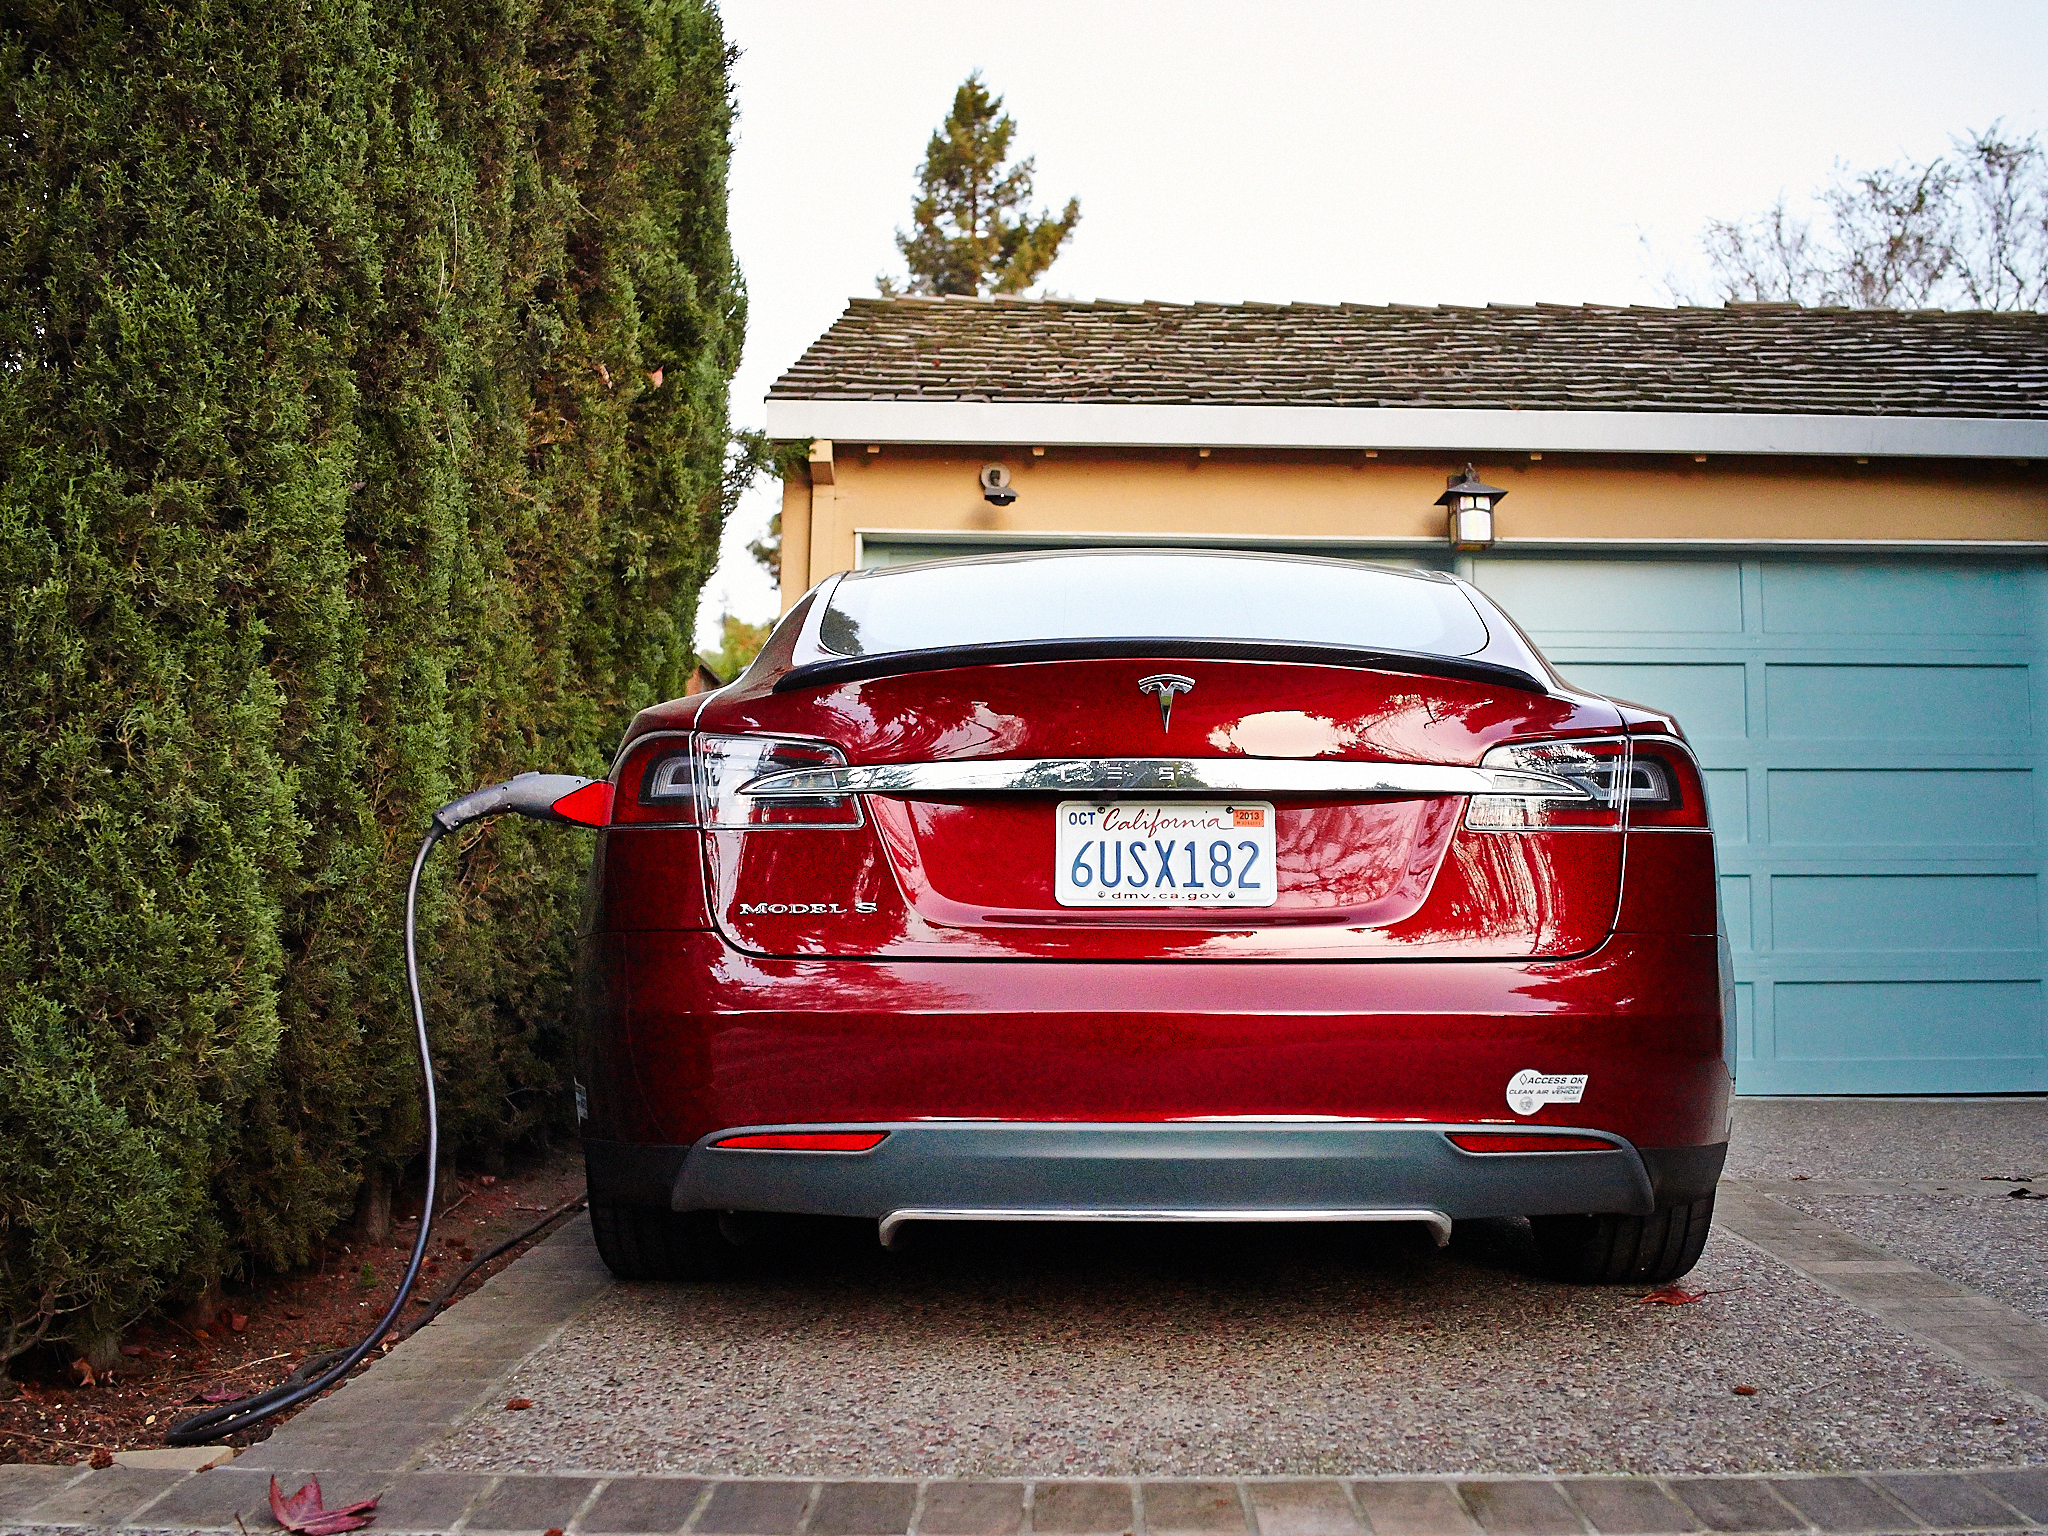 Telsa Model S Charging by Peter Adams.